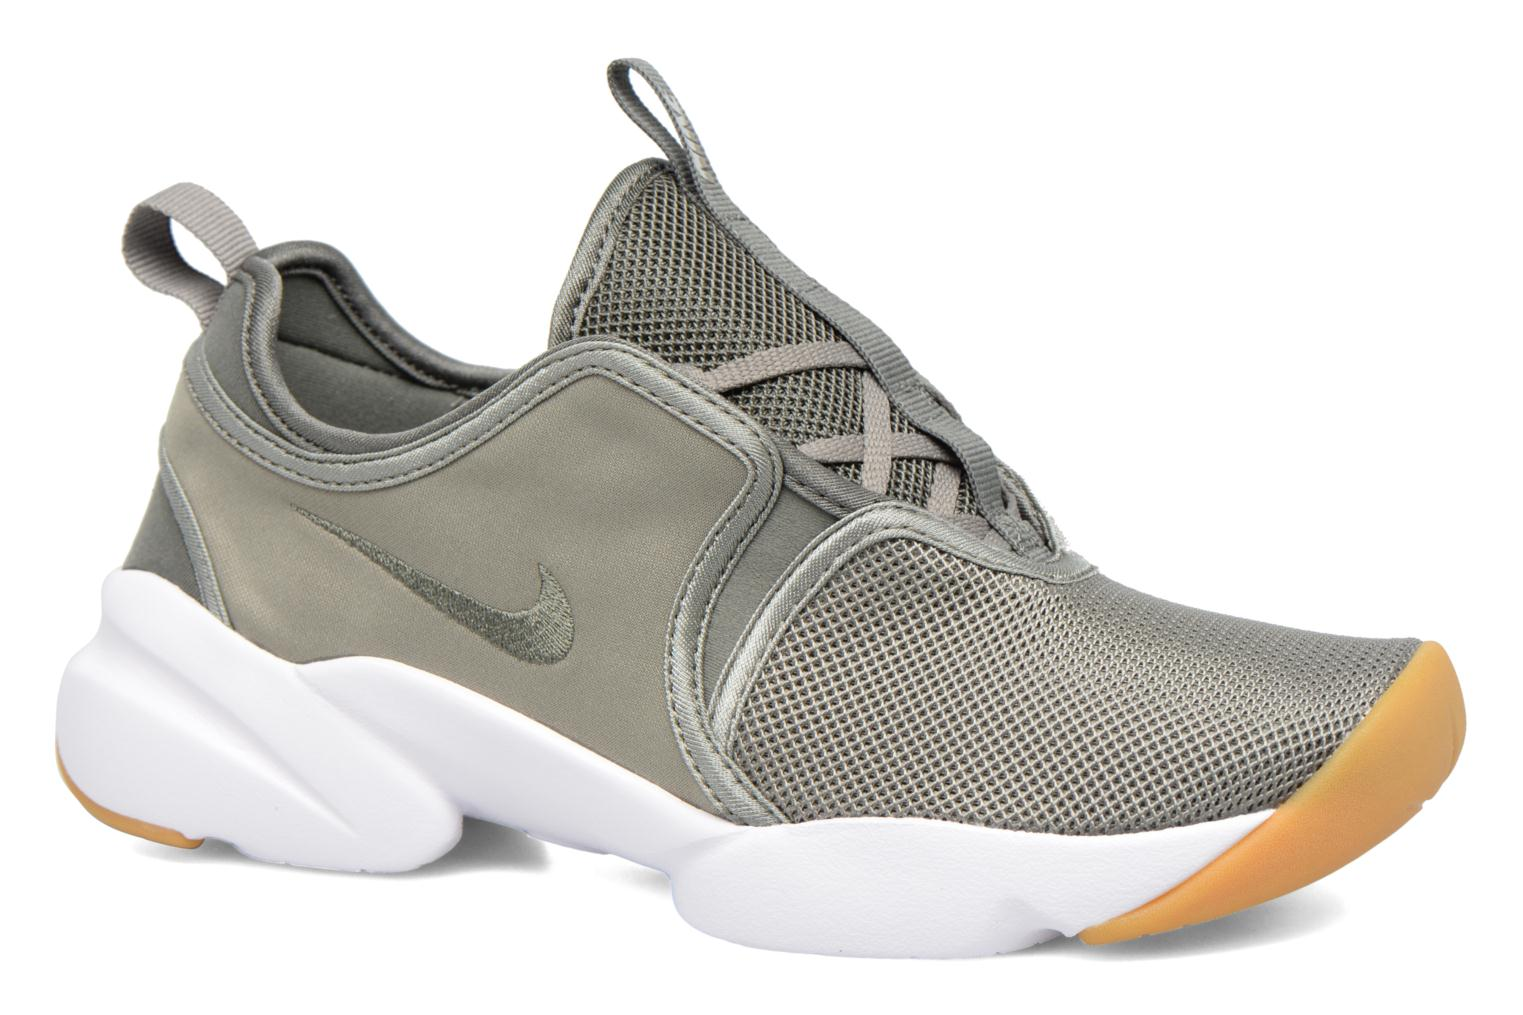 Marques Chaussure femme Nike femme W Nike Loden Dark Stucco/River Rock-Gum Light Brown